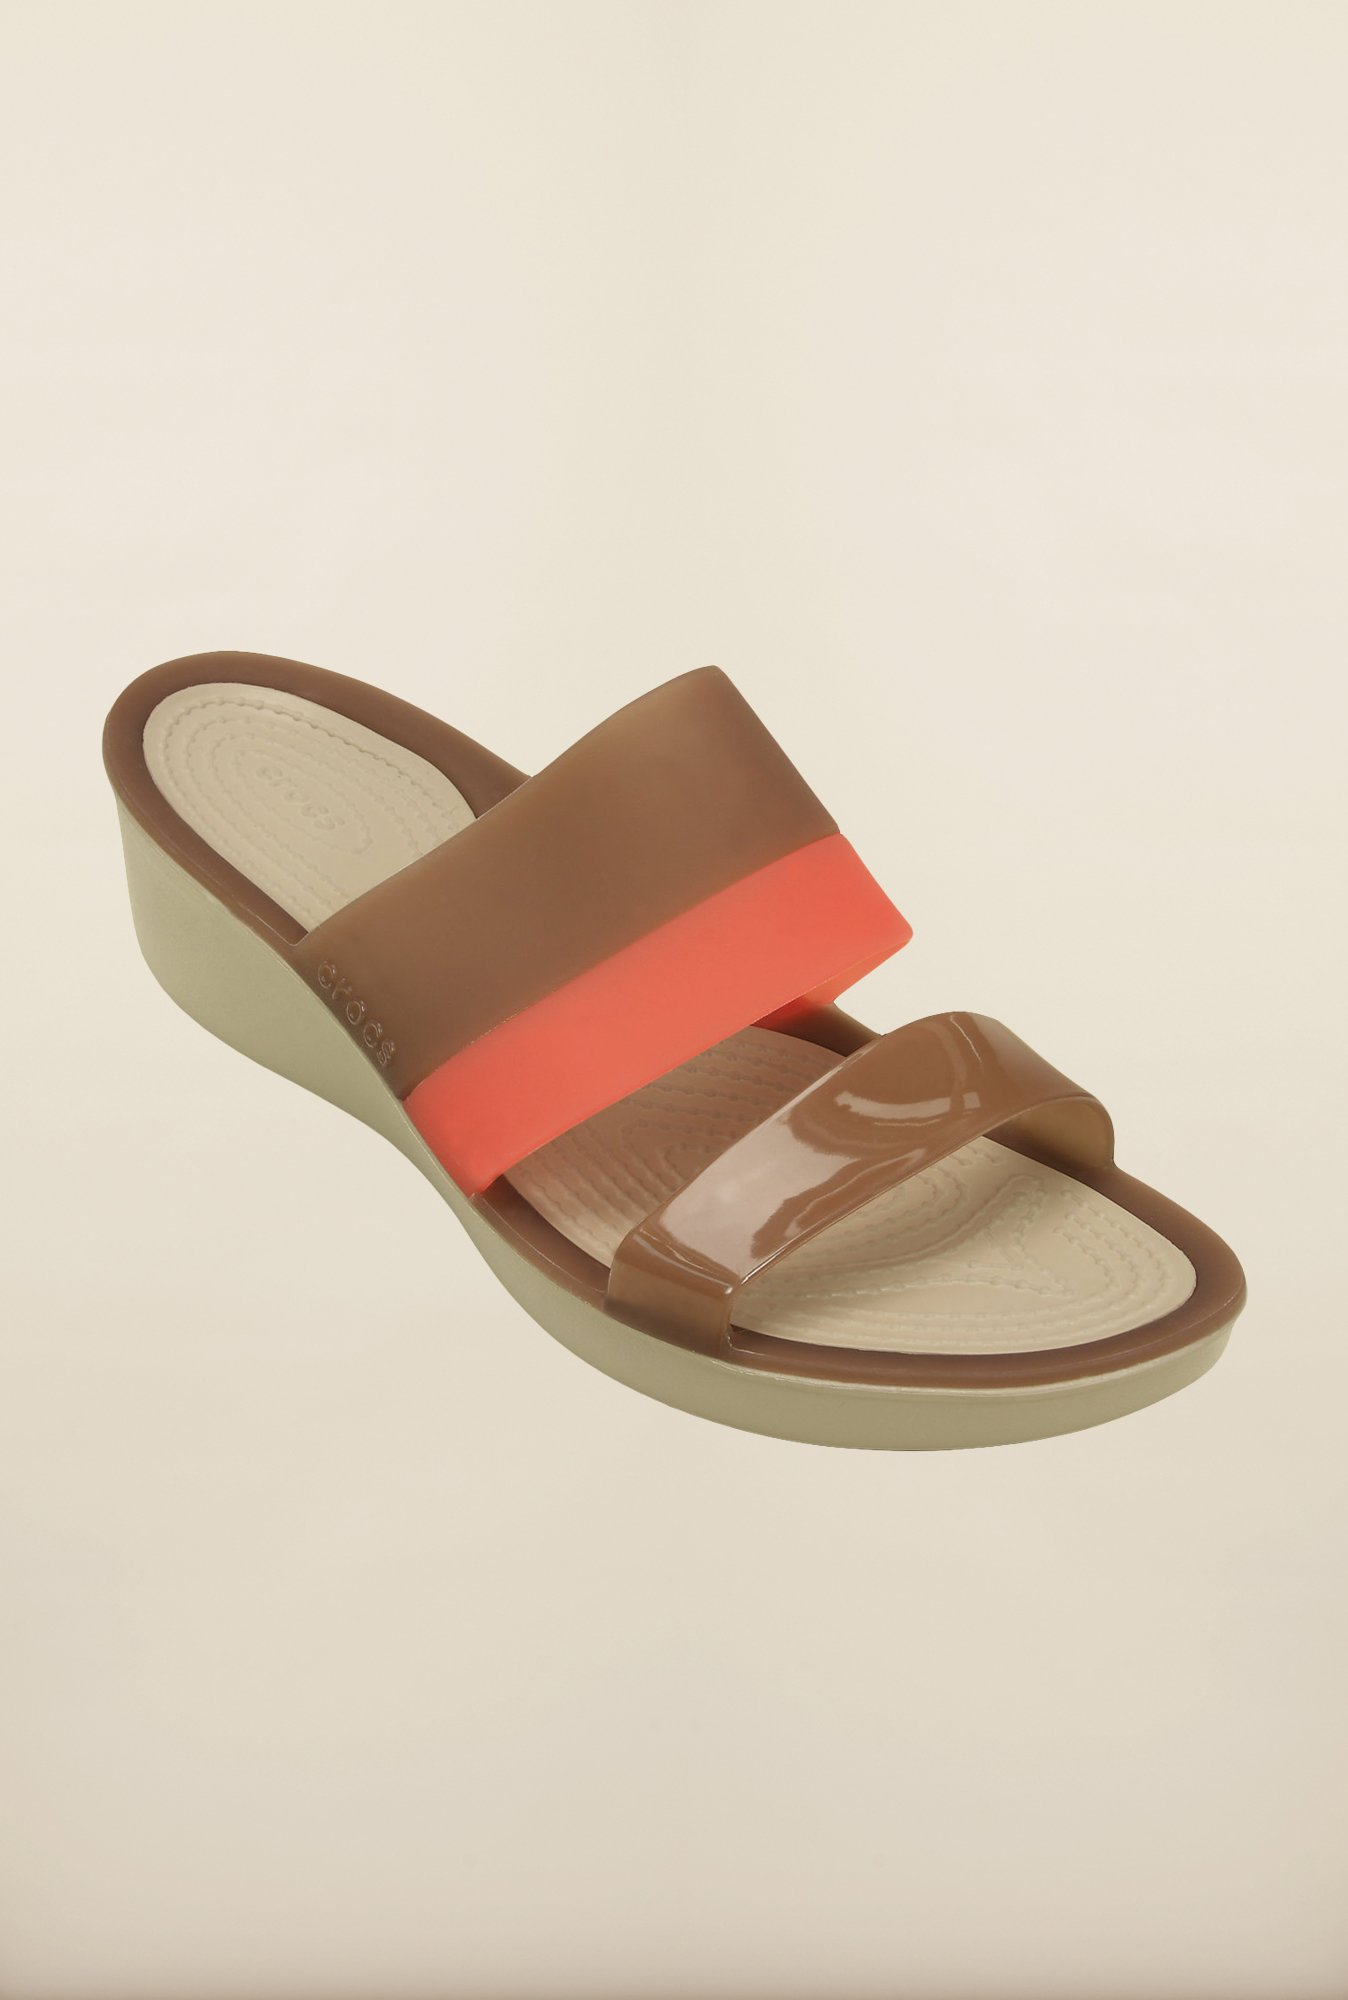 Crocs ColorBlock Brown Wedges